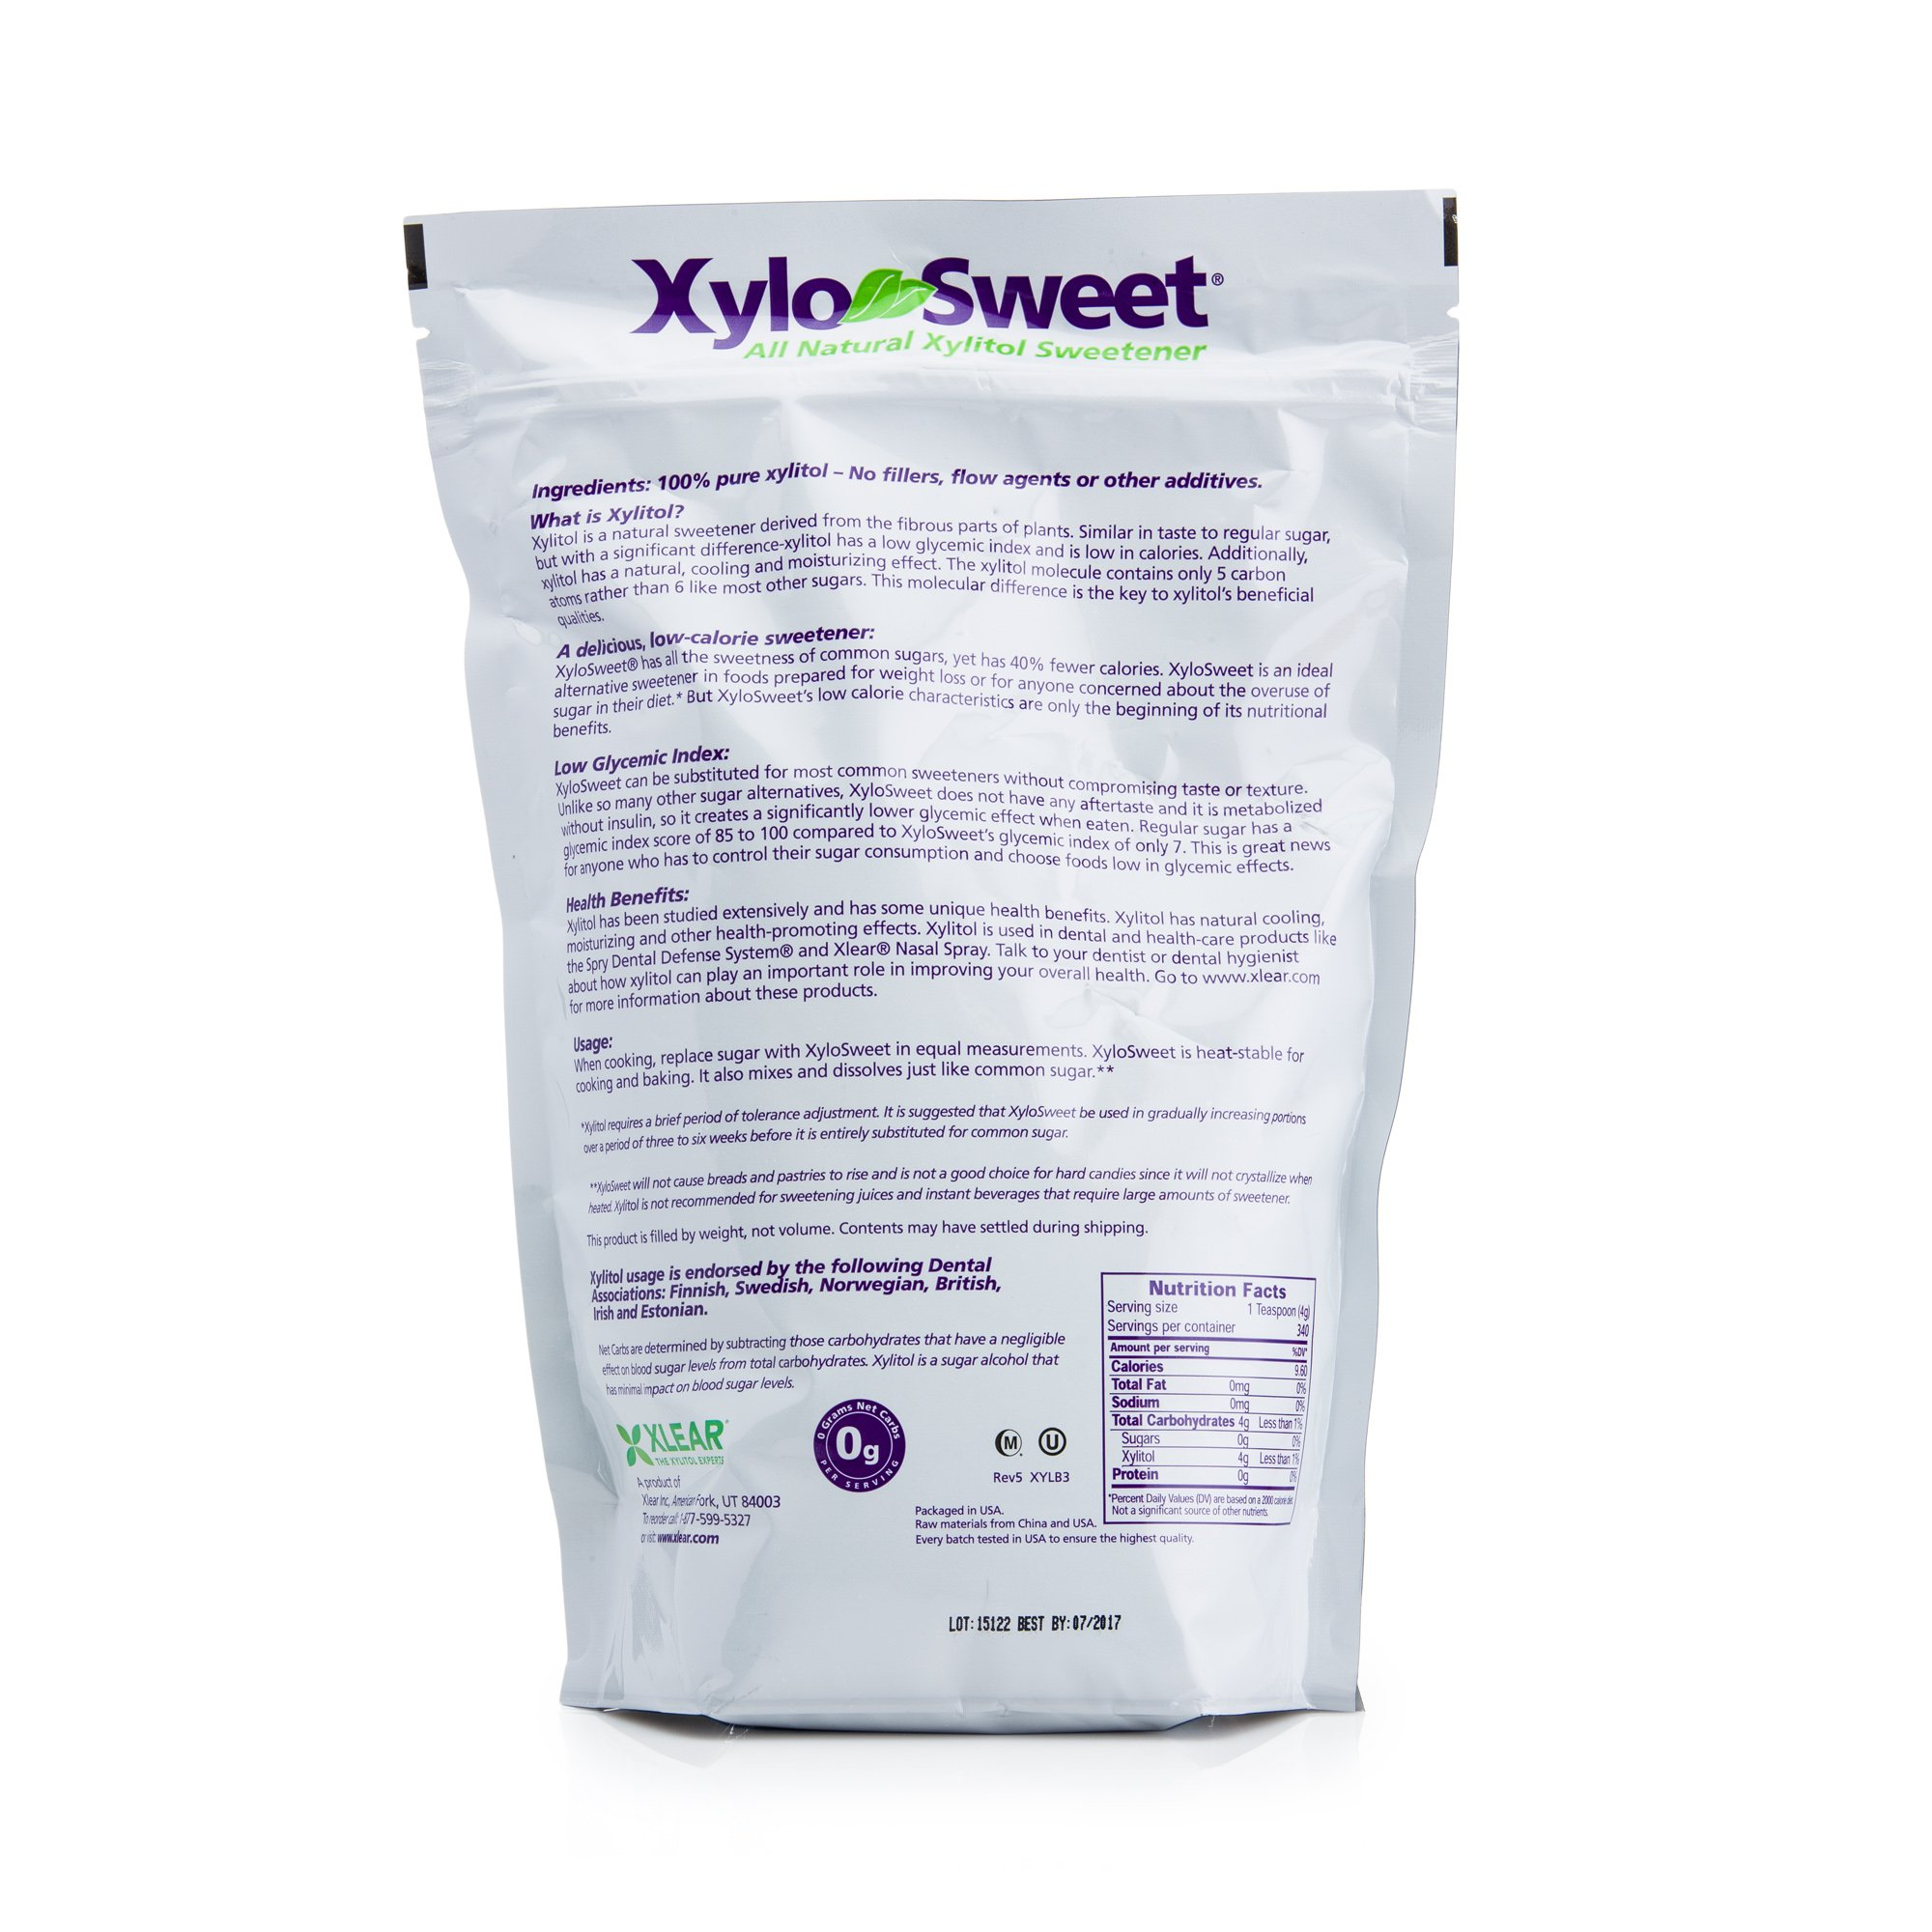 Xlear XyloSweet Xylitol Sweetener - 3lb Bag by Xlear (Image #2)